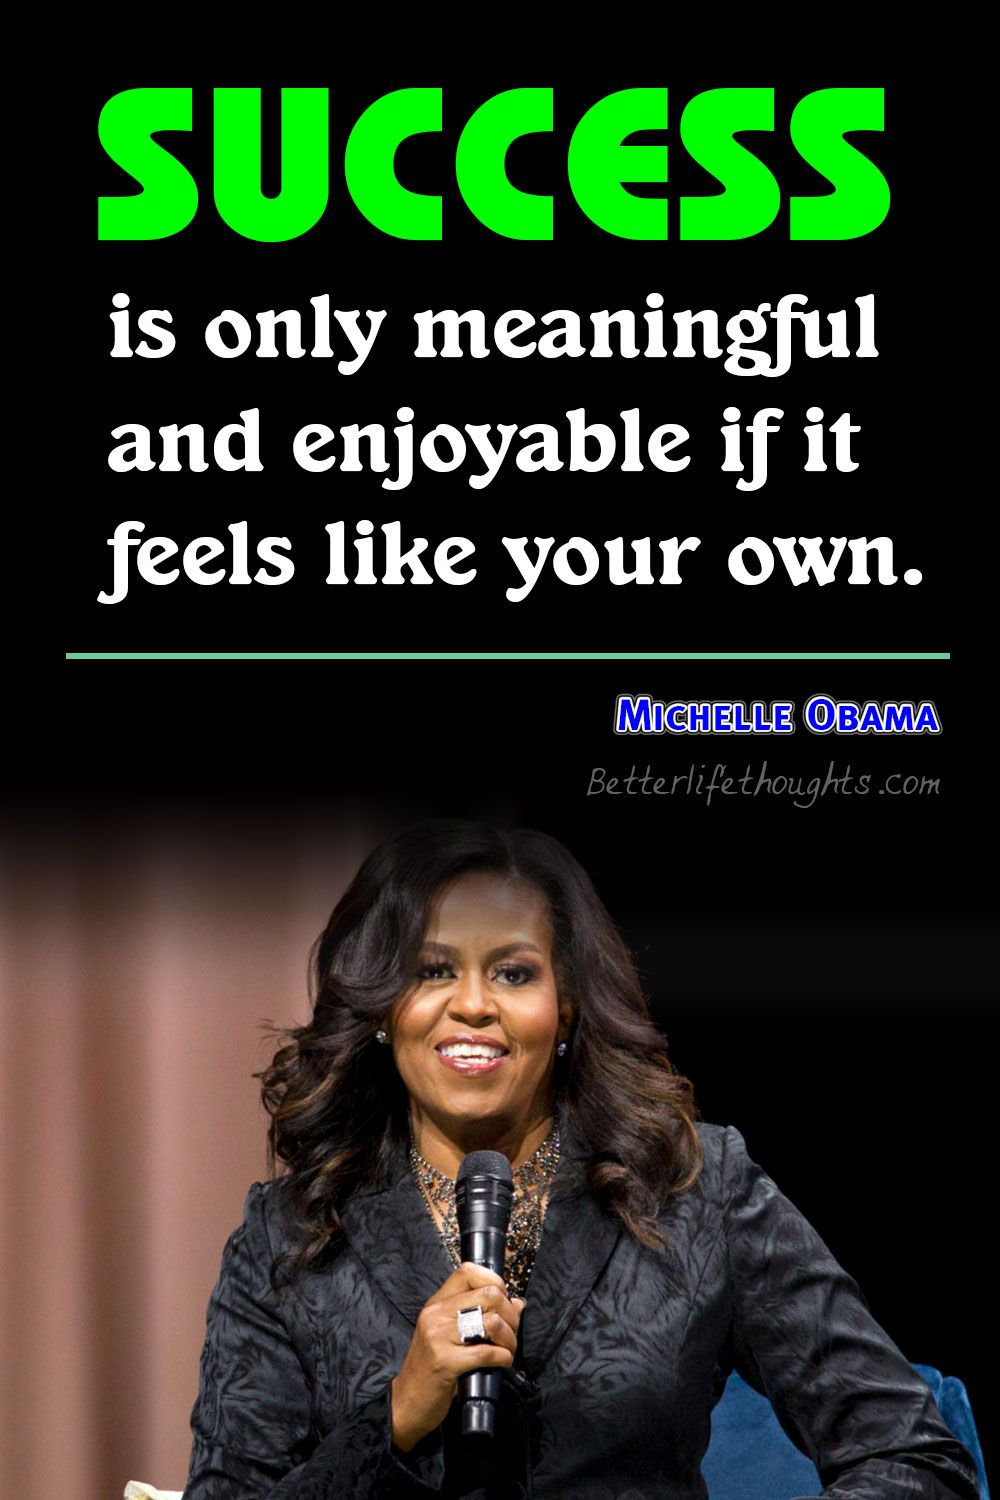 60 Latest Michelle Obama Quotes Famous People Quotes In 2020 Obama Quote Quotes By Famous People Michelle Obama Quotes